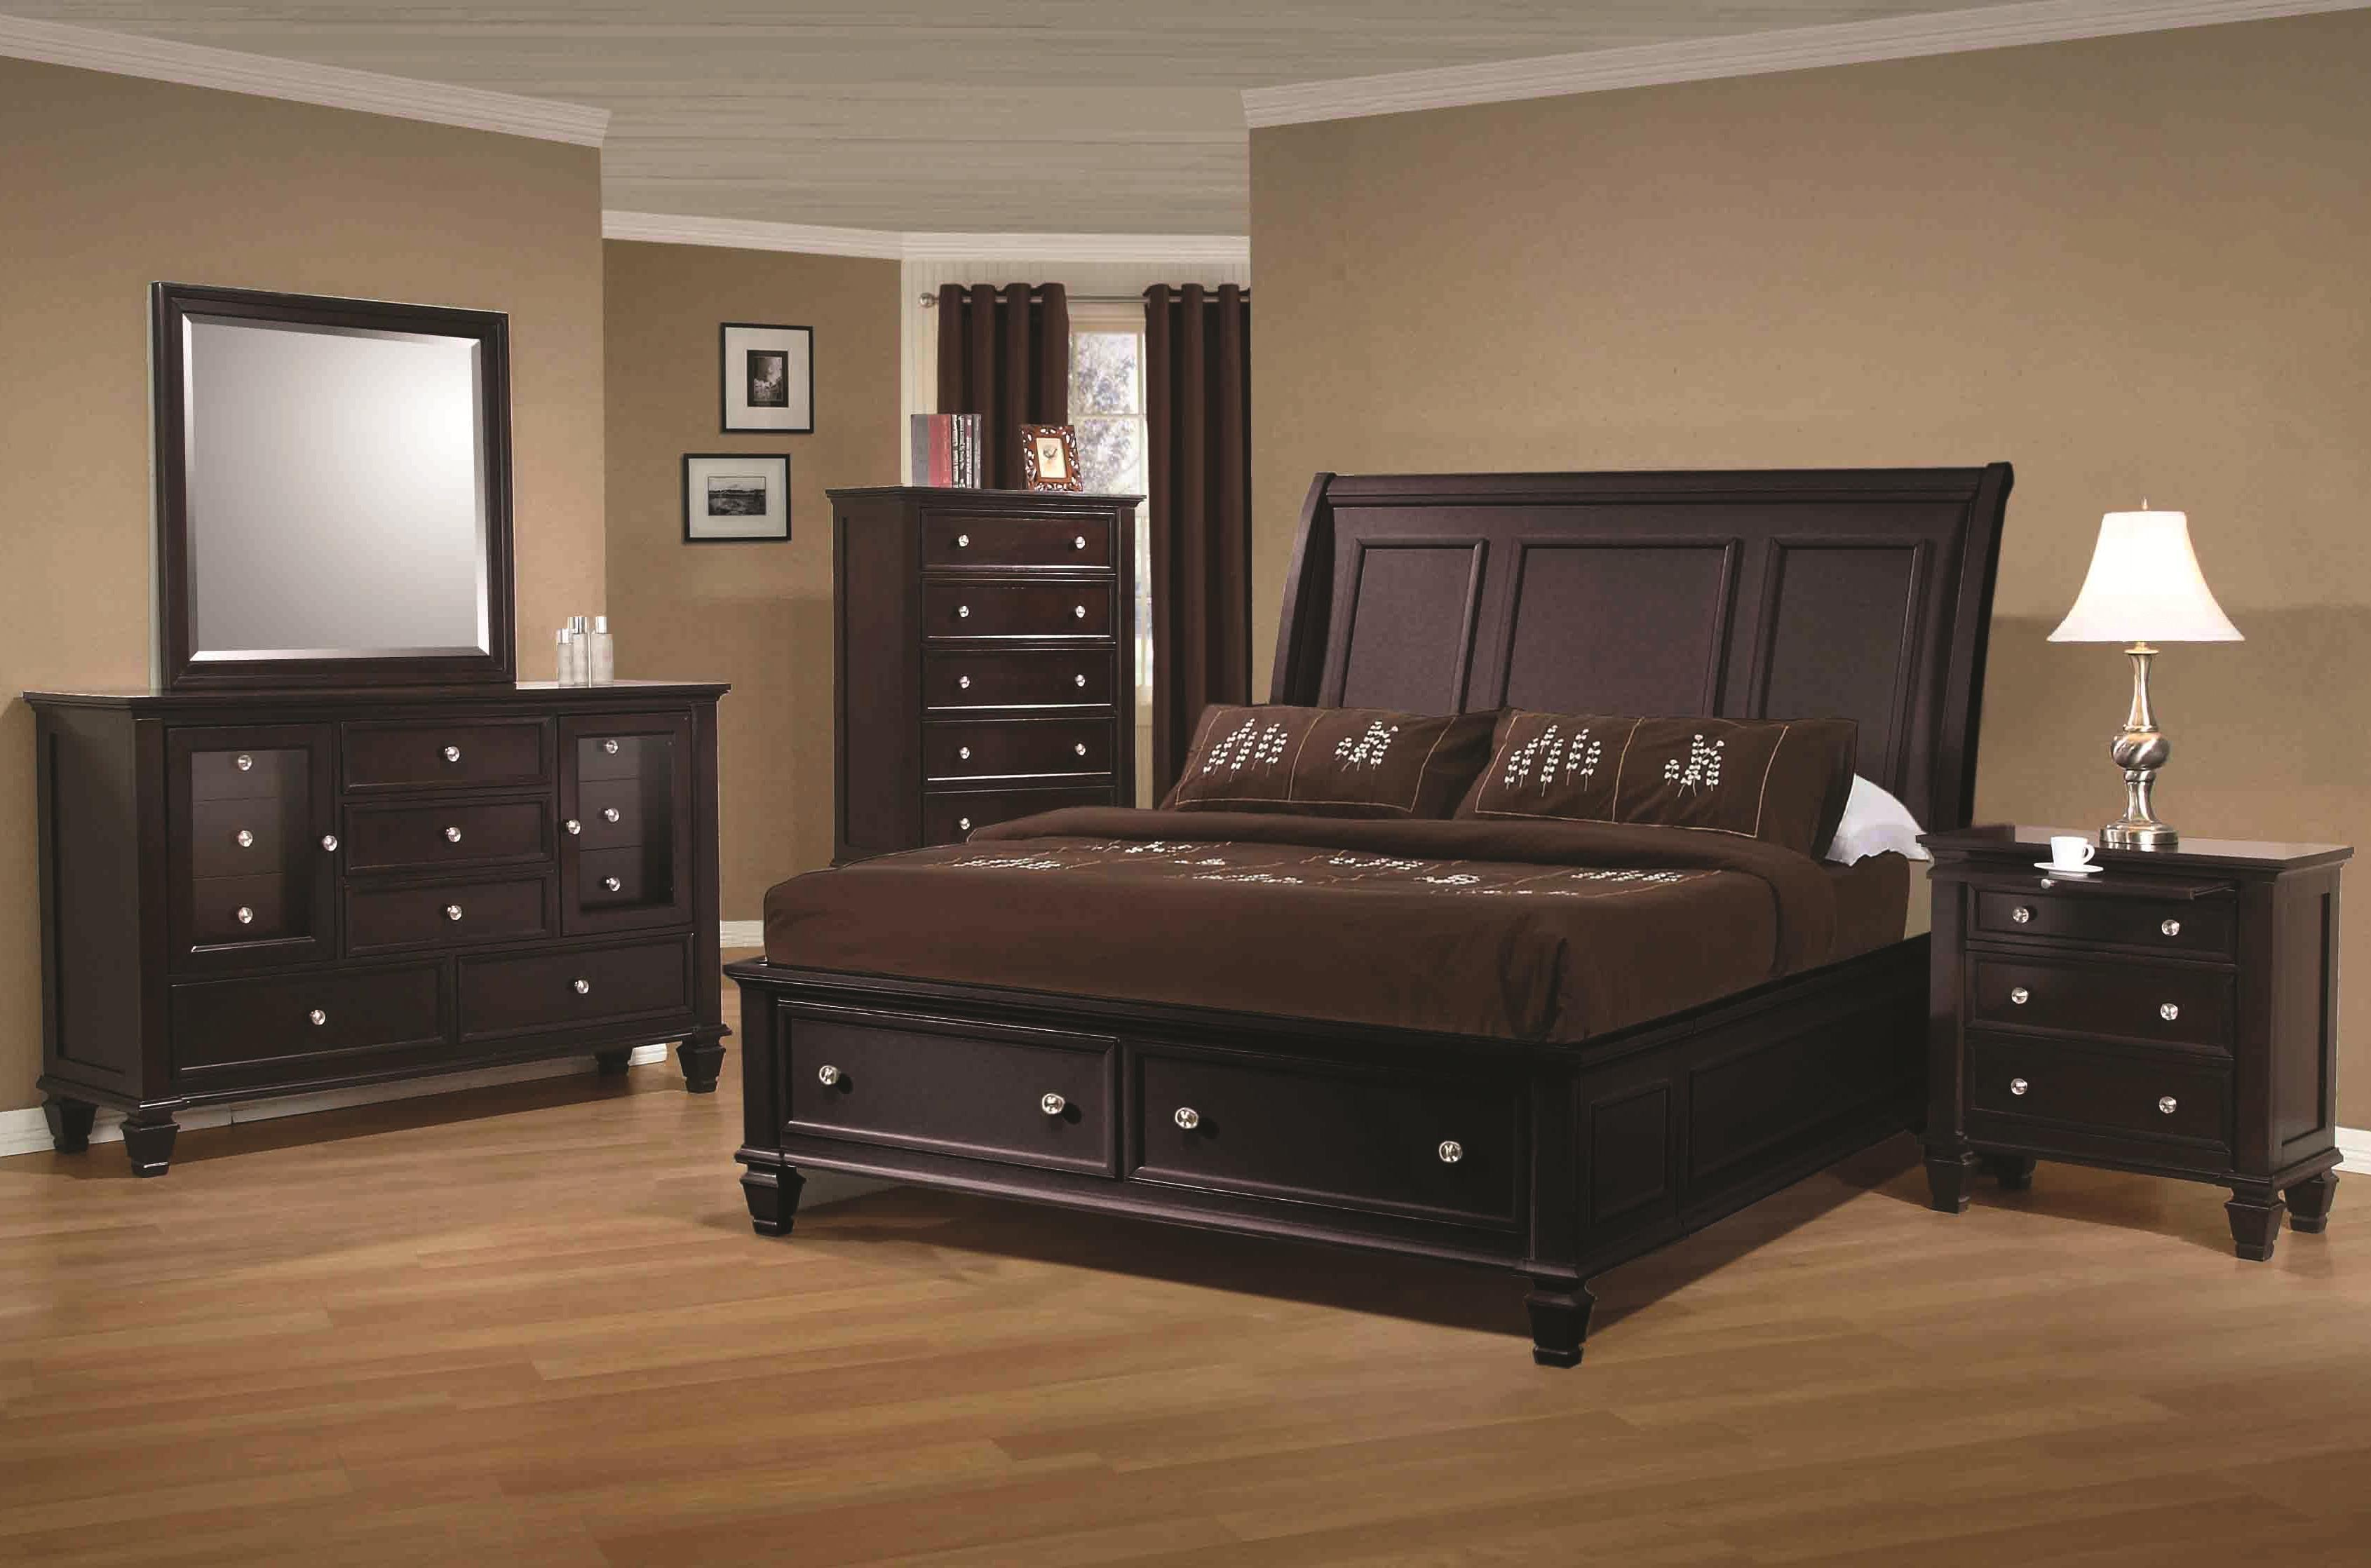 Coaster Sandy Beach Queen Bedroom Group - Item Number: 201990 Q Bedroom Group 2